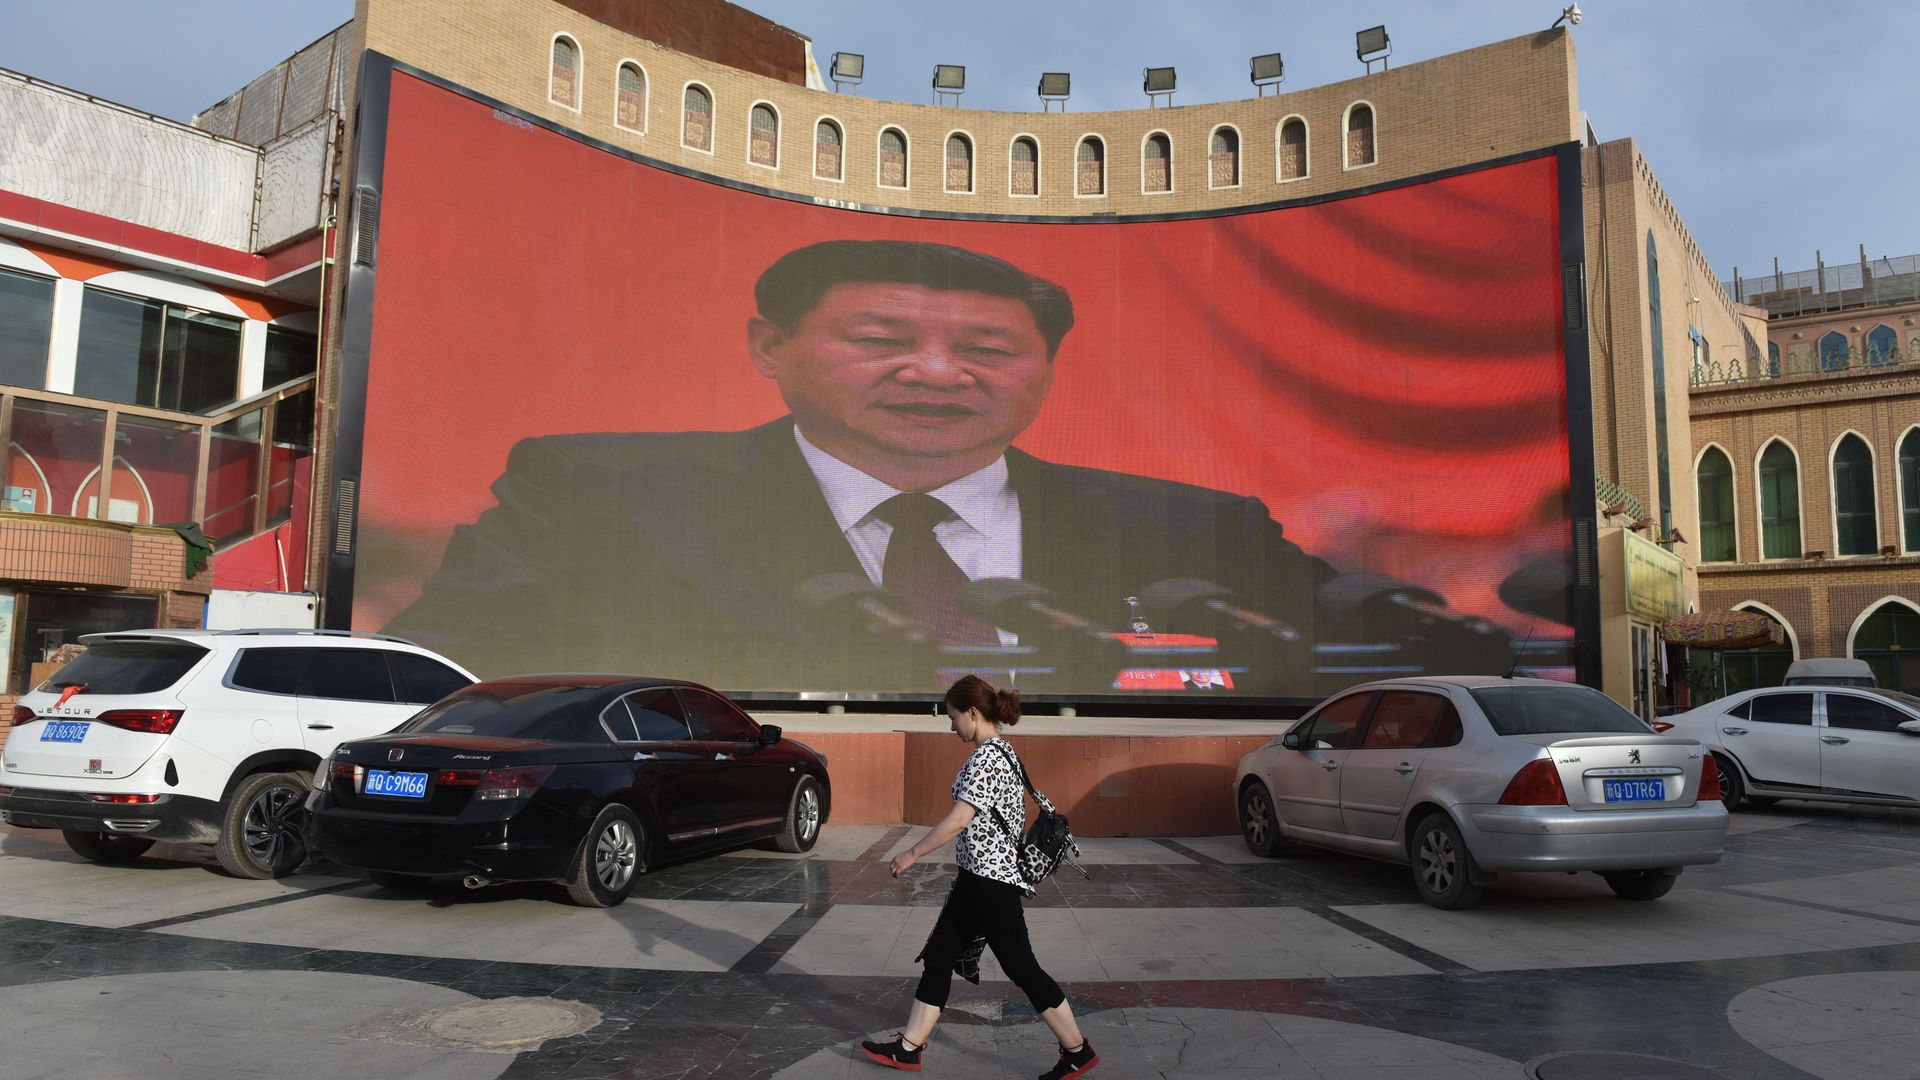 This photo taken on June 4, 2019 shows people walking past a screen showing images of Chinese President Xi Jinping in Kashgar, in China's western Xinjiang region.